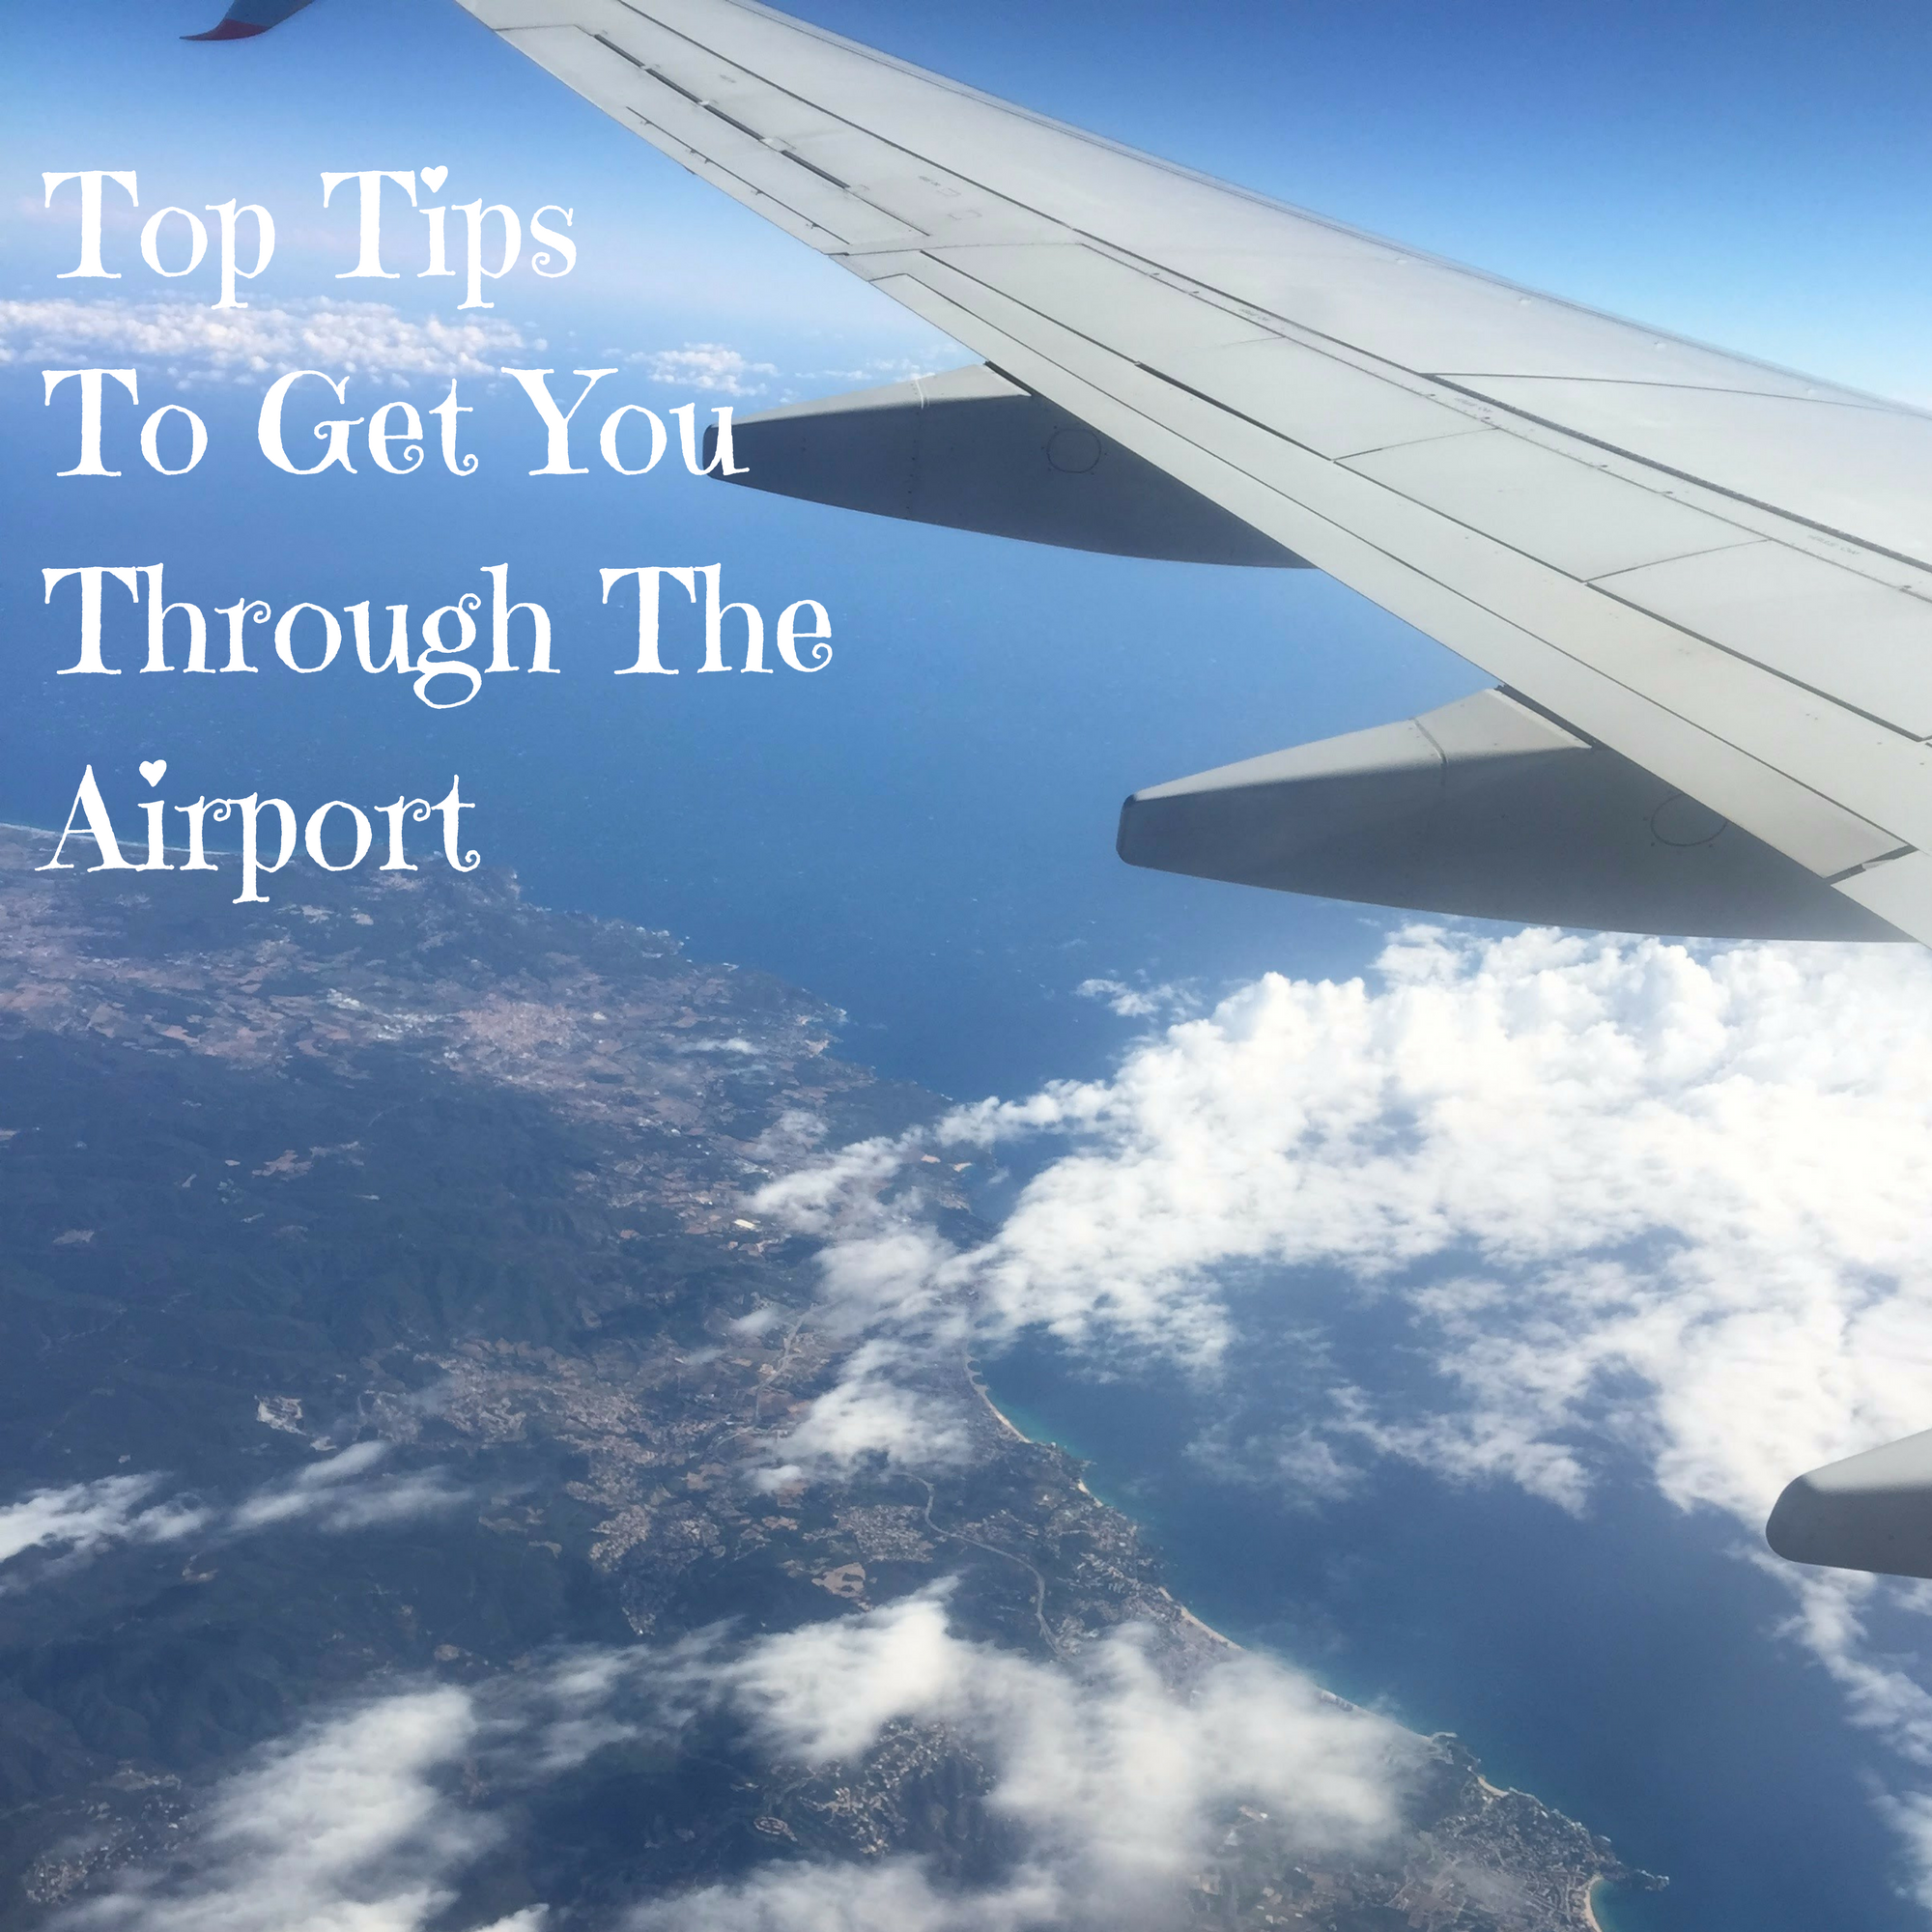 Top Tips To Get You Through The Airport